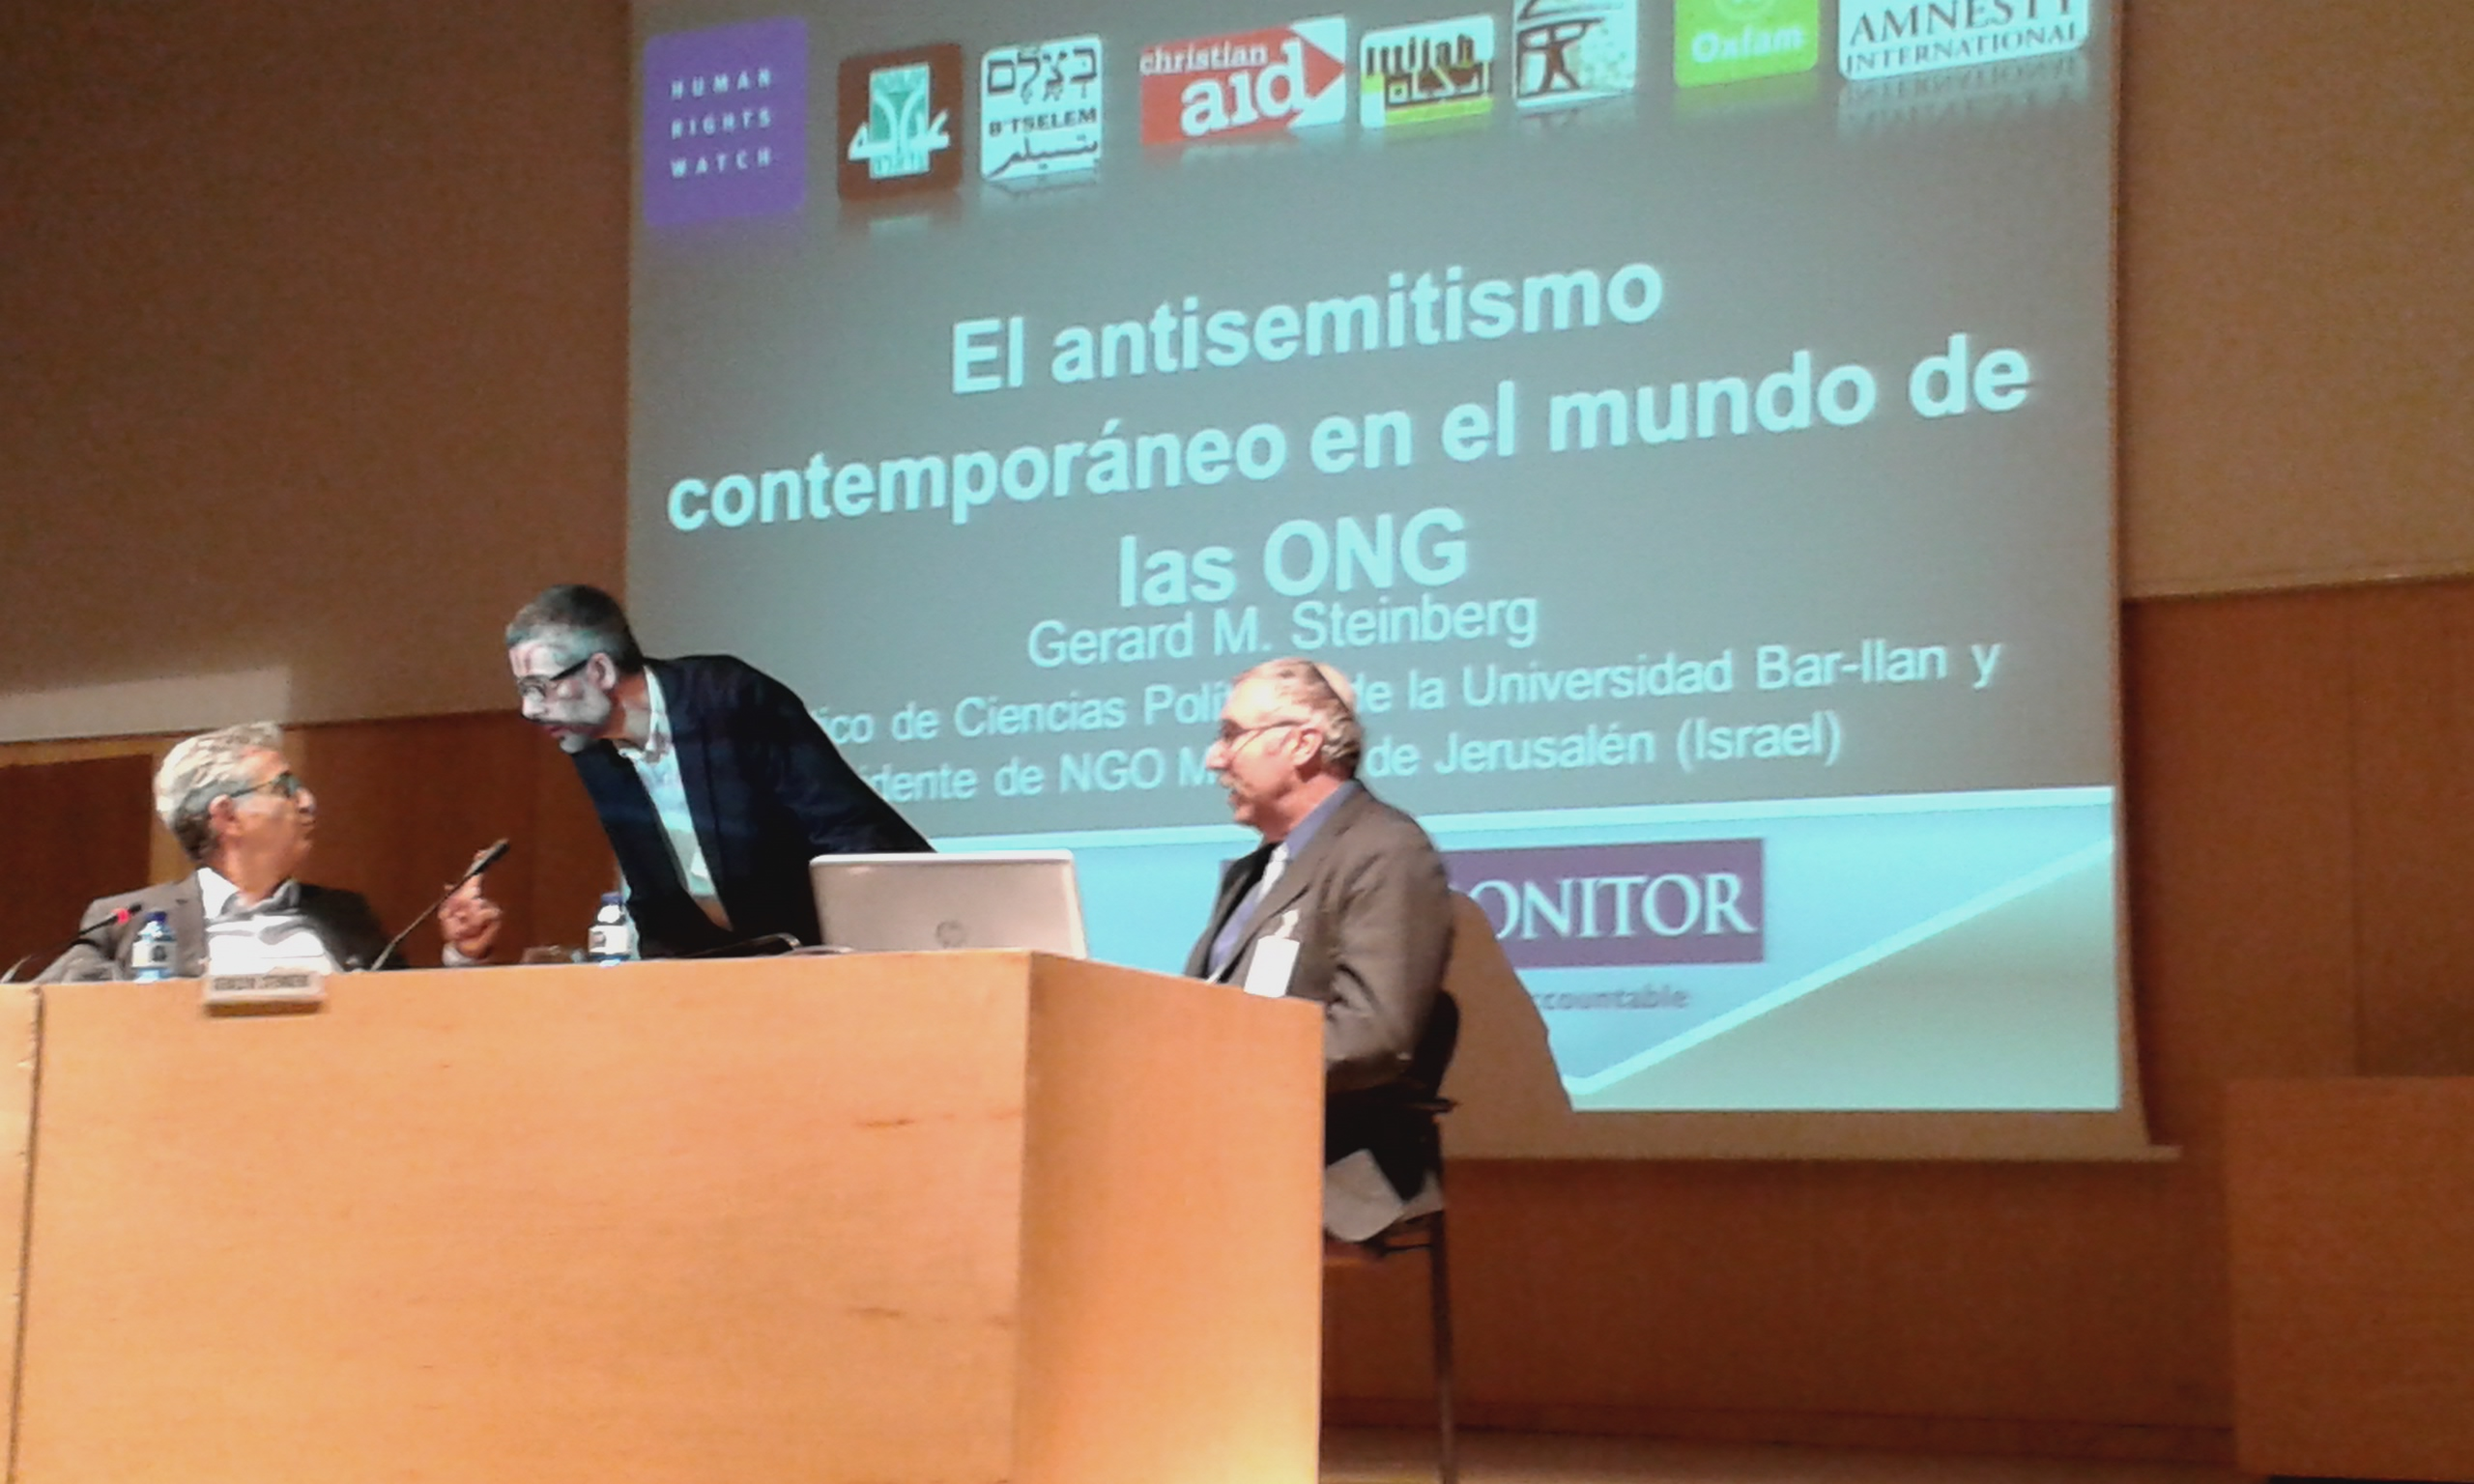 David Grebler, President, Fundacion Baruch Spinoza Prof. Xavier Torrens, University of Barcelona and Prof. Gerald Steinberg at the third seminar on antisemitism, held in Barcelona, Nov. 5, 2014